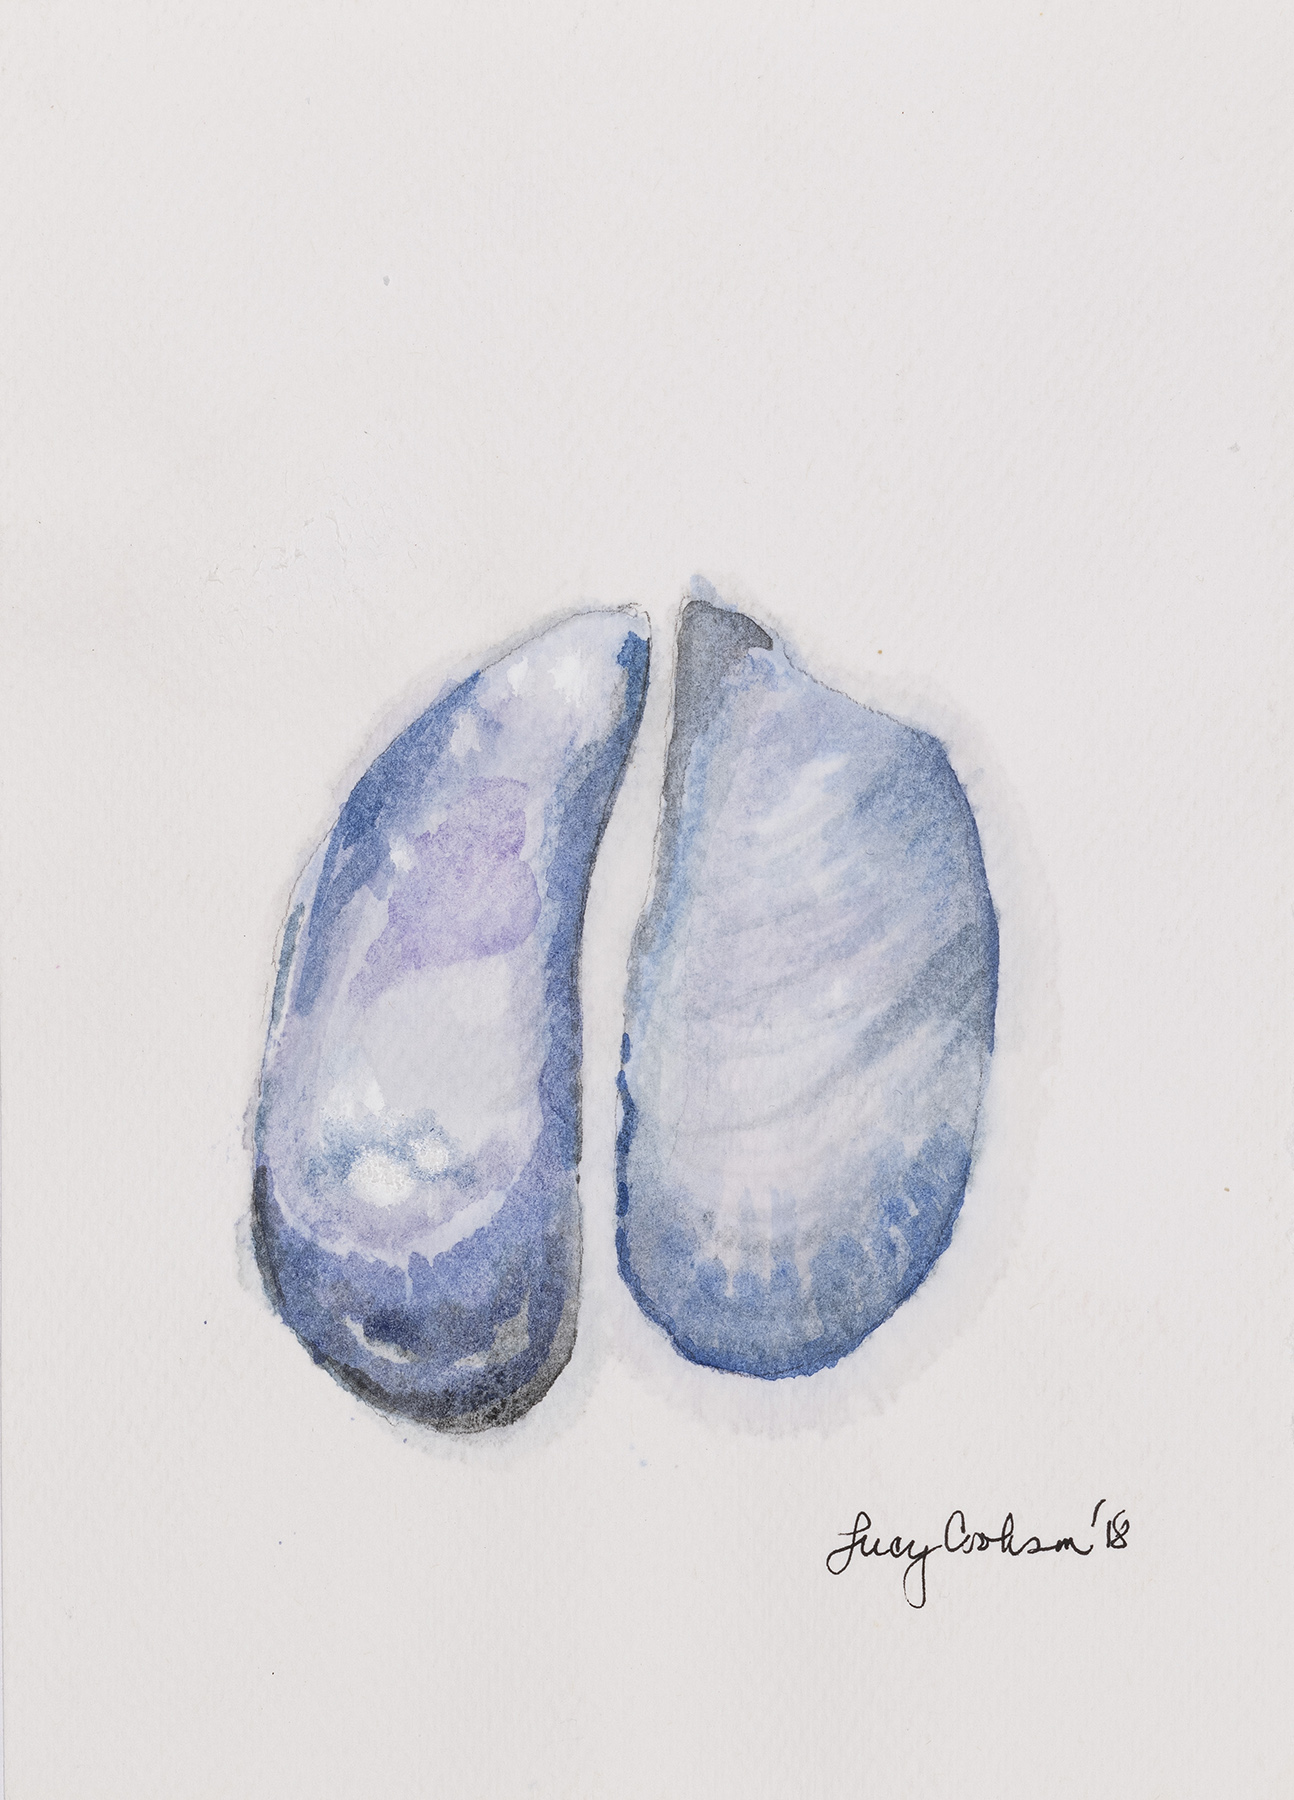 Mussels, 2018, Watercolor on paper, 8 x 6 in.